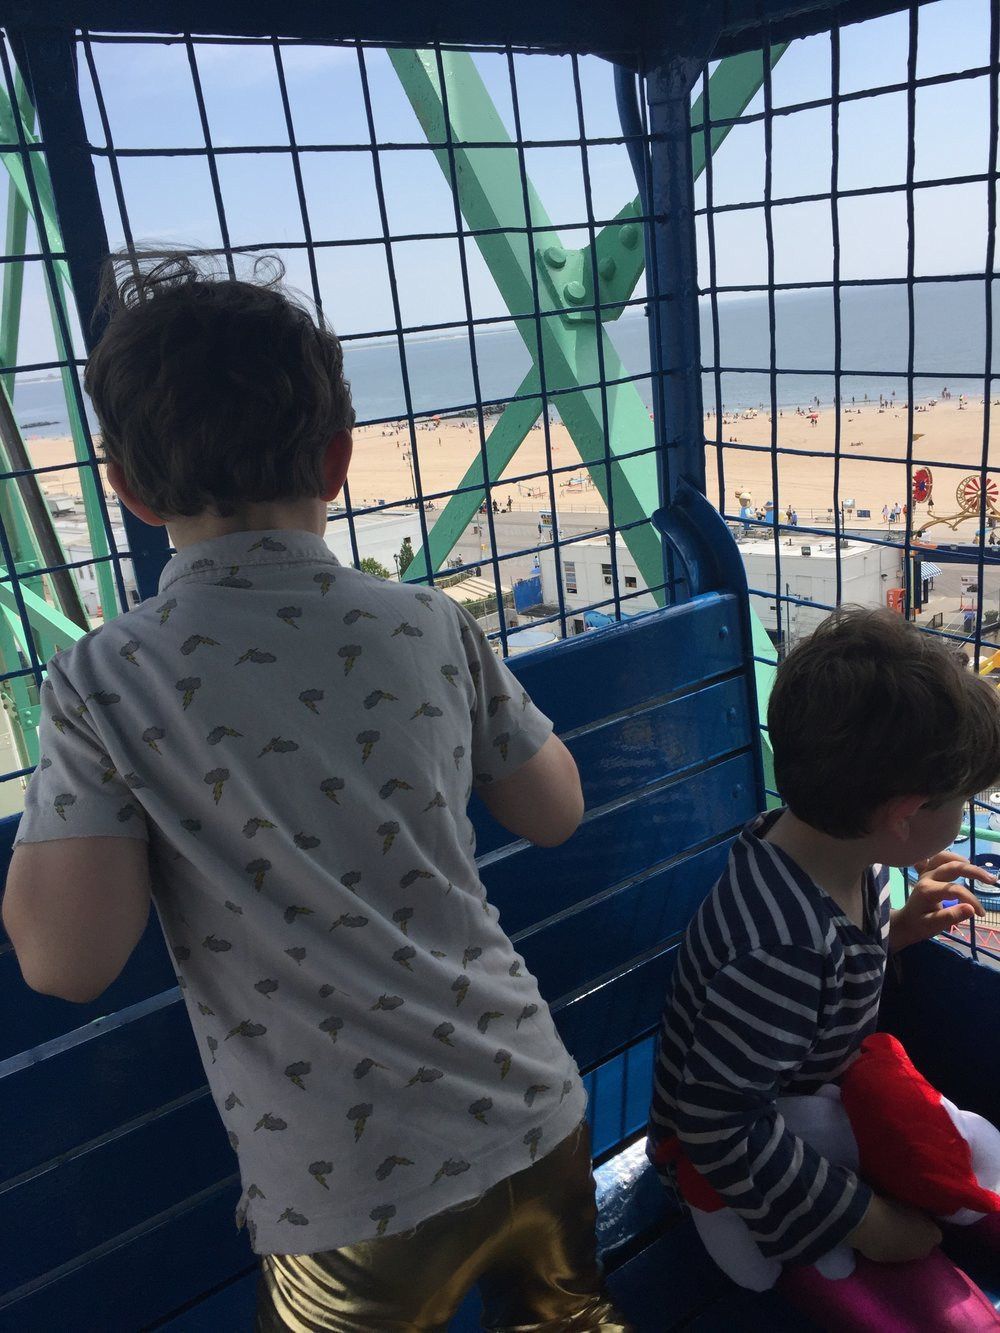 Tip: take the swinging cars on the Wonder Wheel. Way cooler.